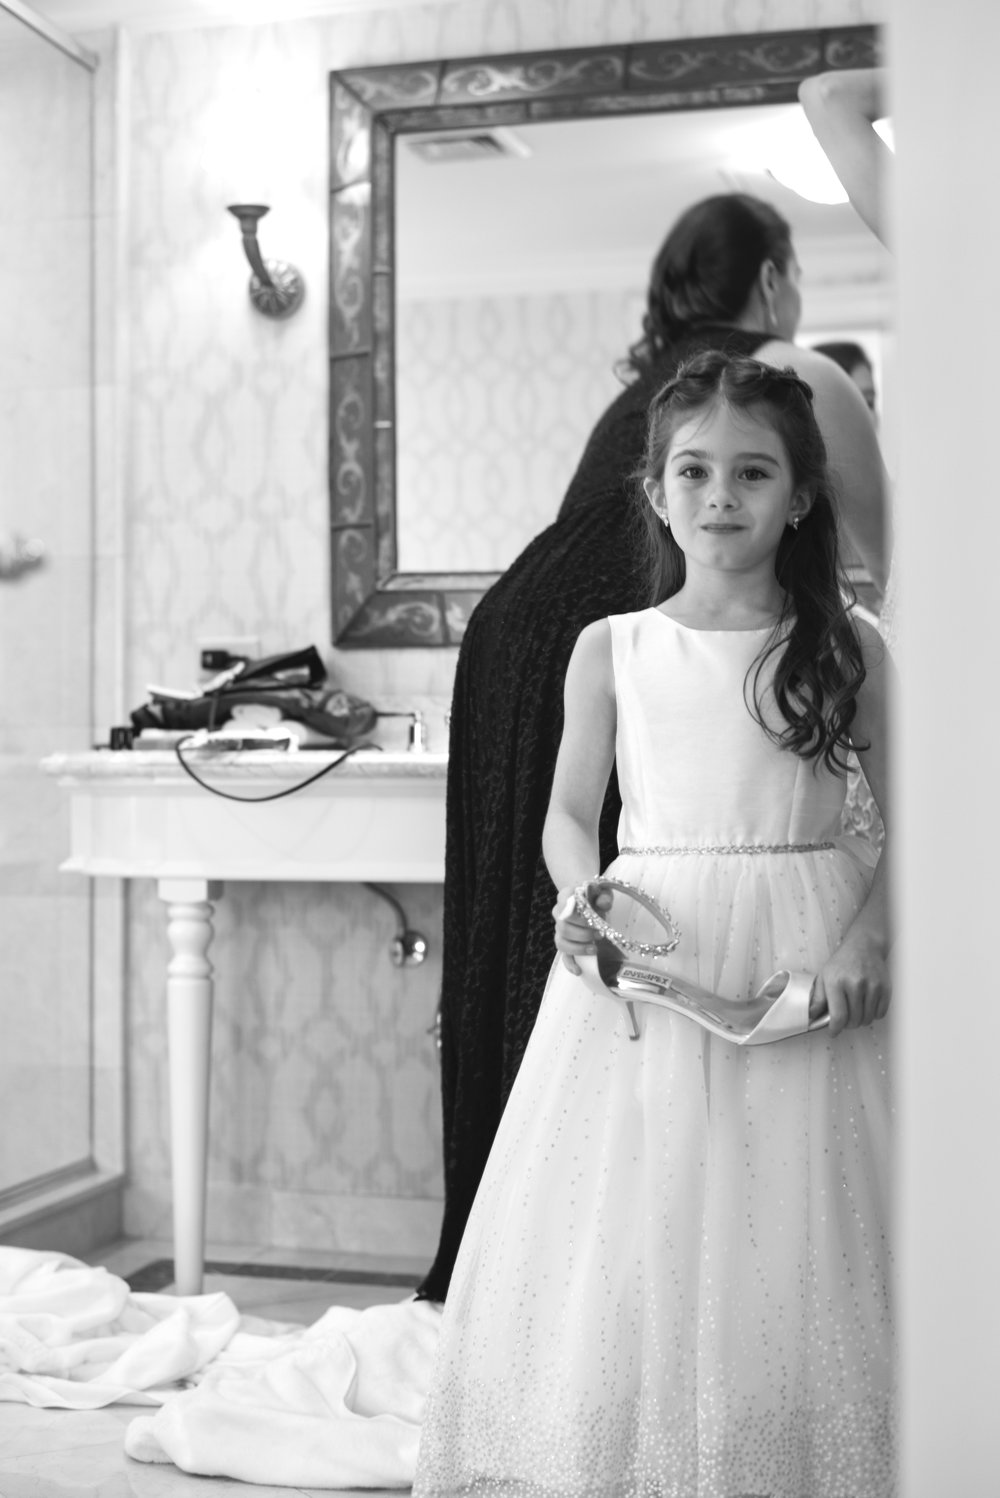 The flower girl, holding the brides shoe, waiting to put it on her foot.